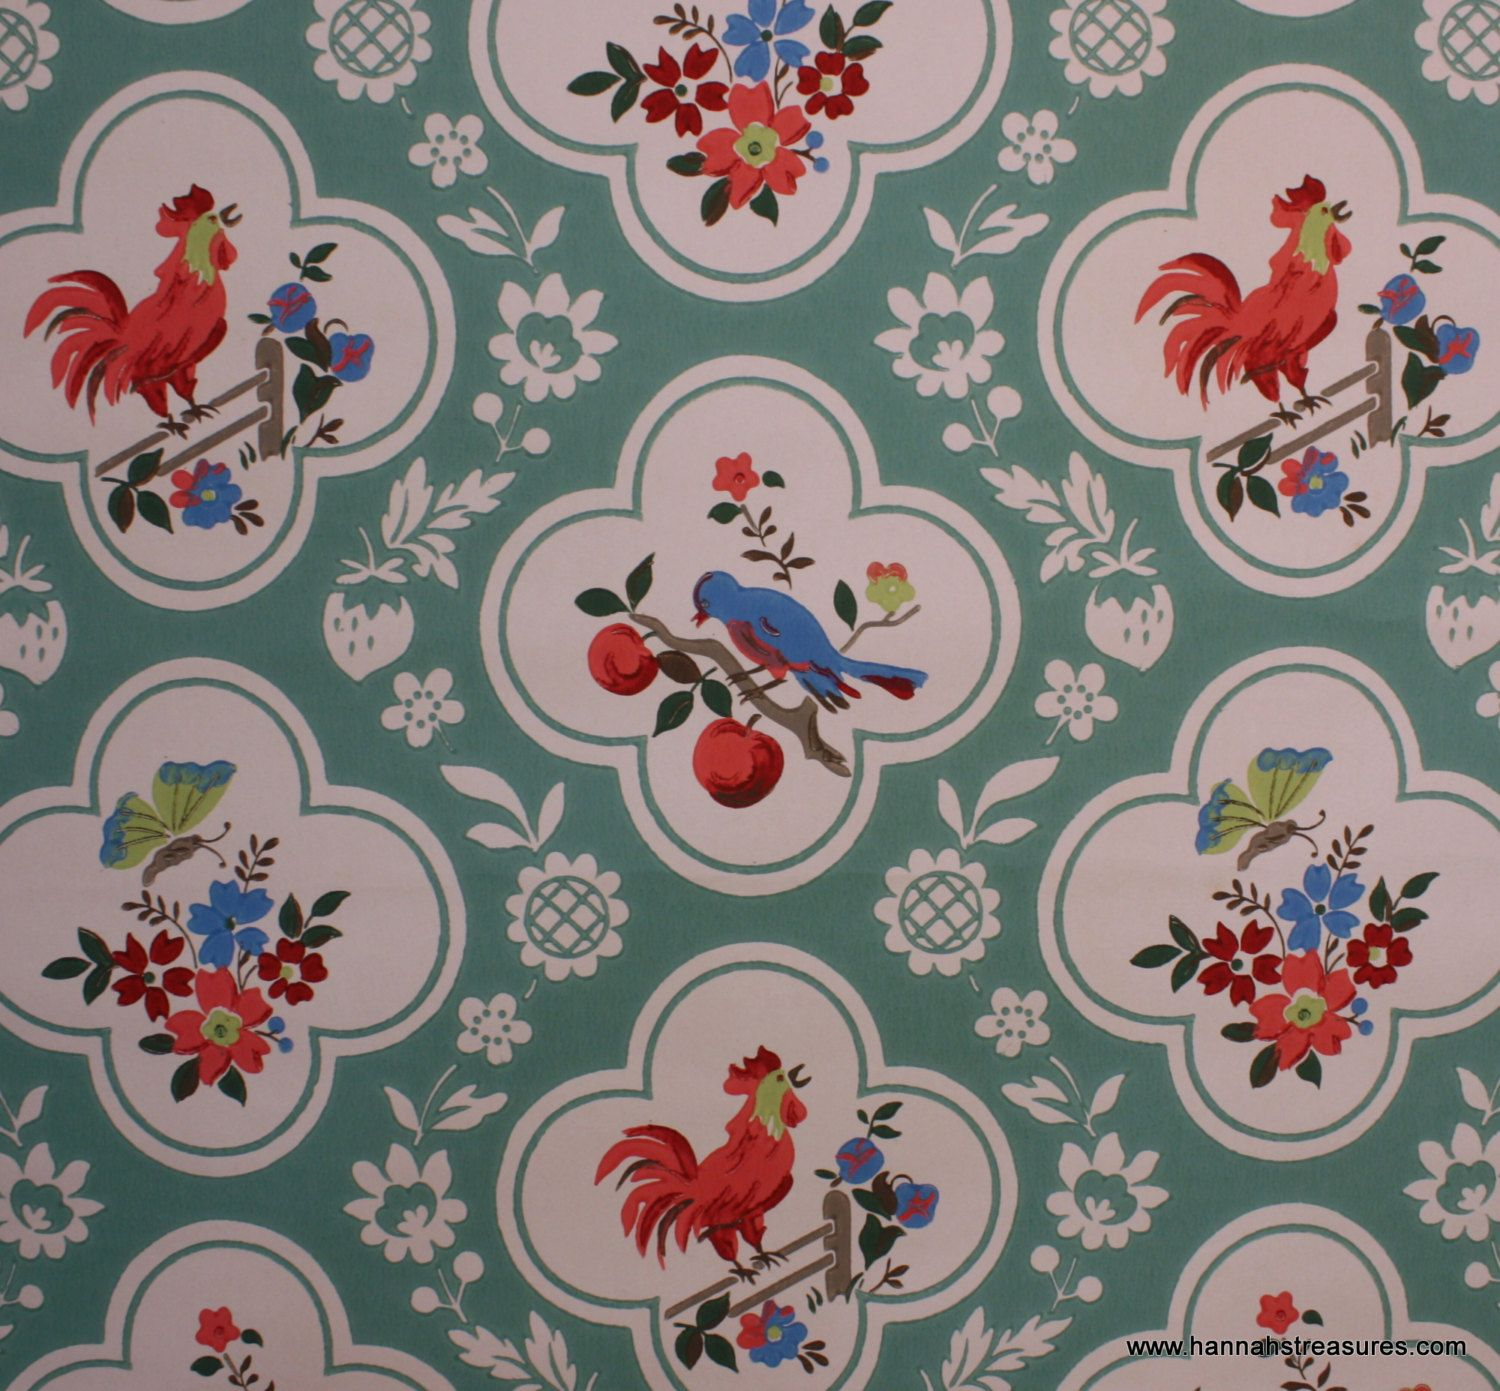 1940s Vintage Wallpaper Red and Aqua with birds cherries roosters 1500x1391